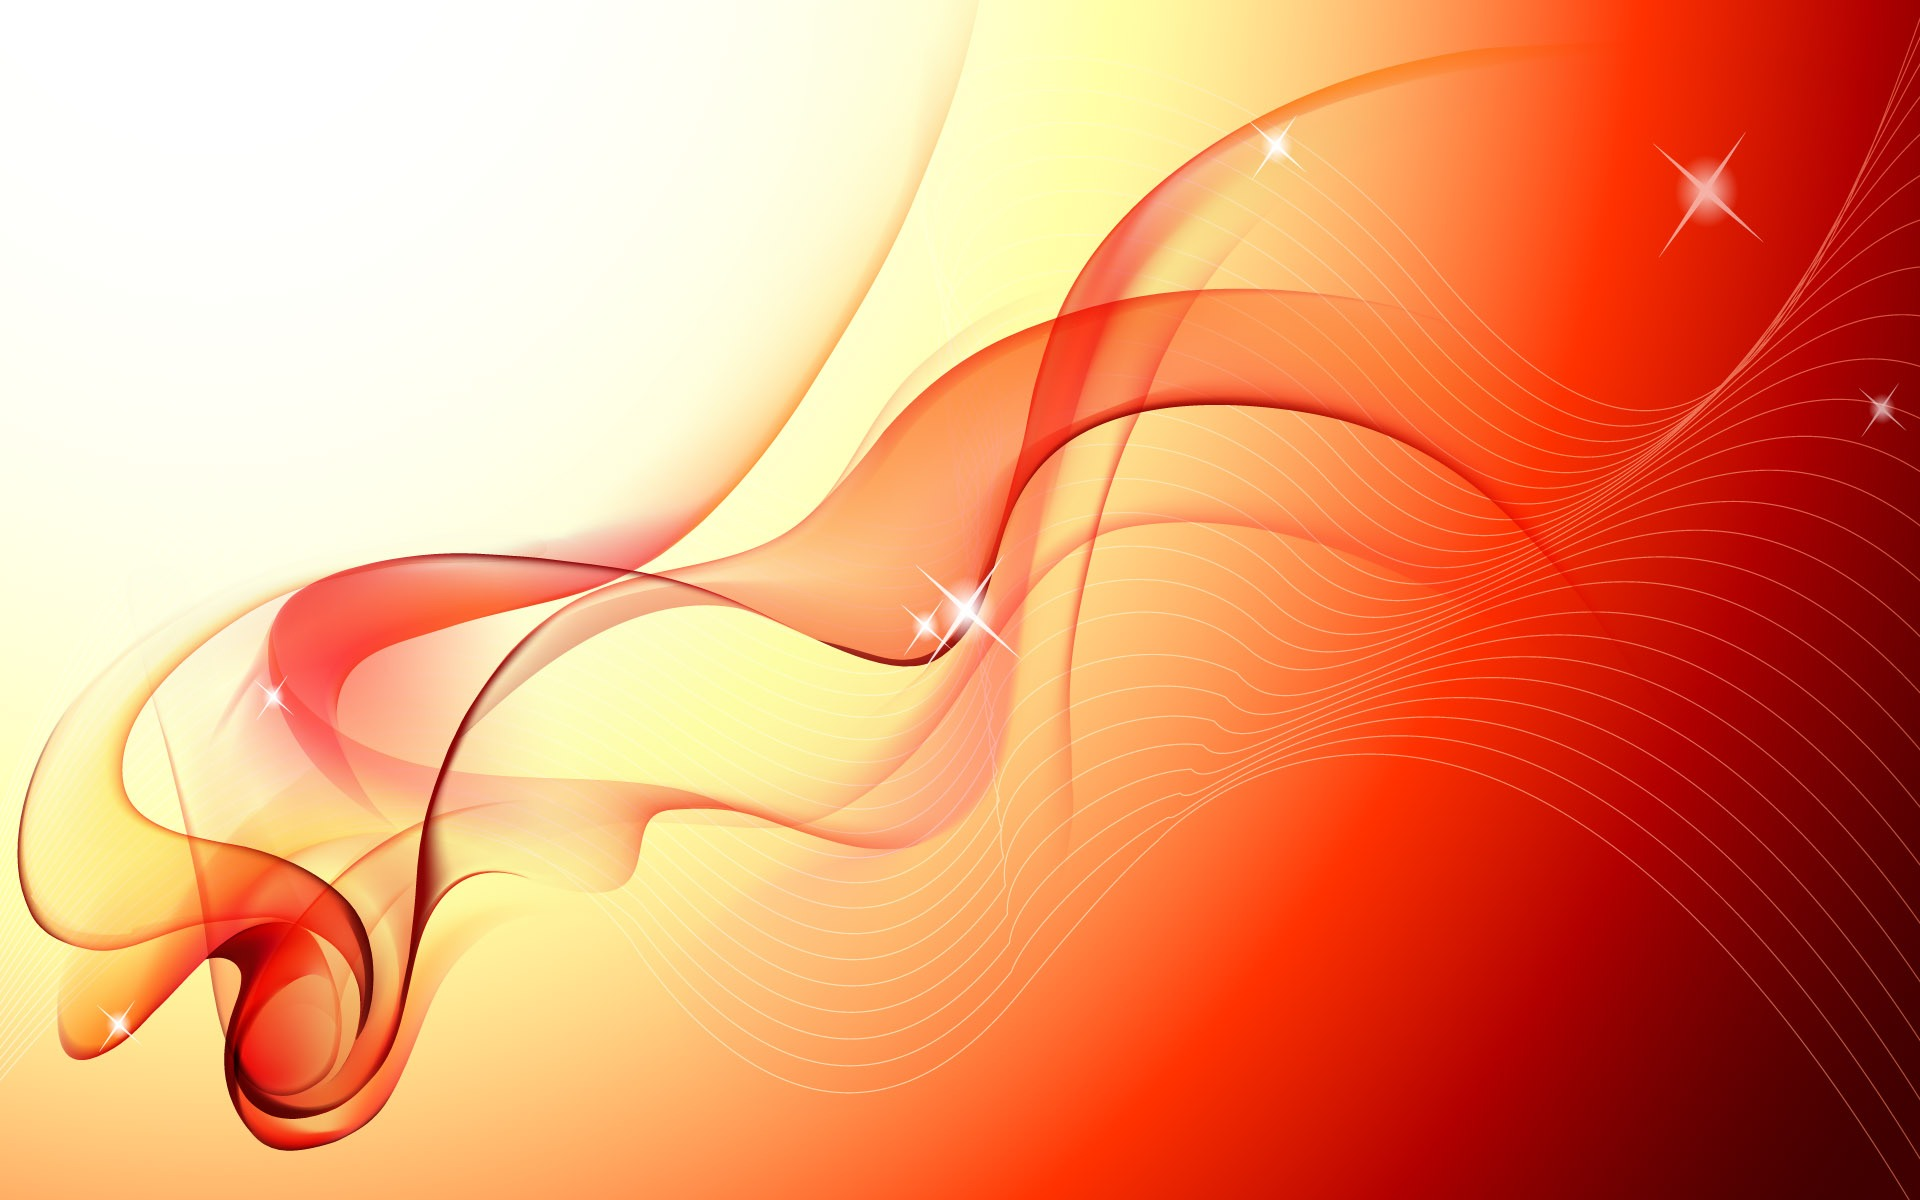 Orange Ribbon desktop wallpaper 1920x1200